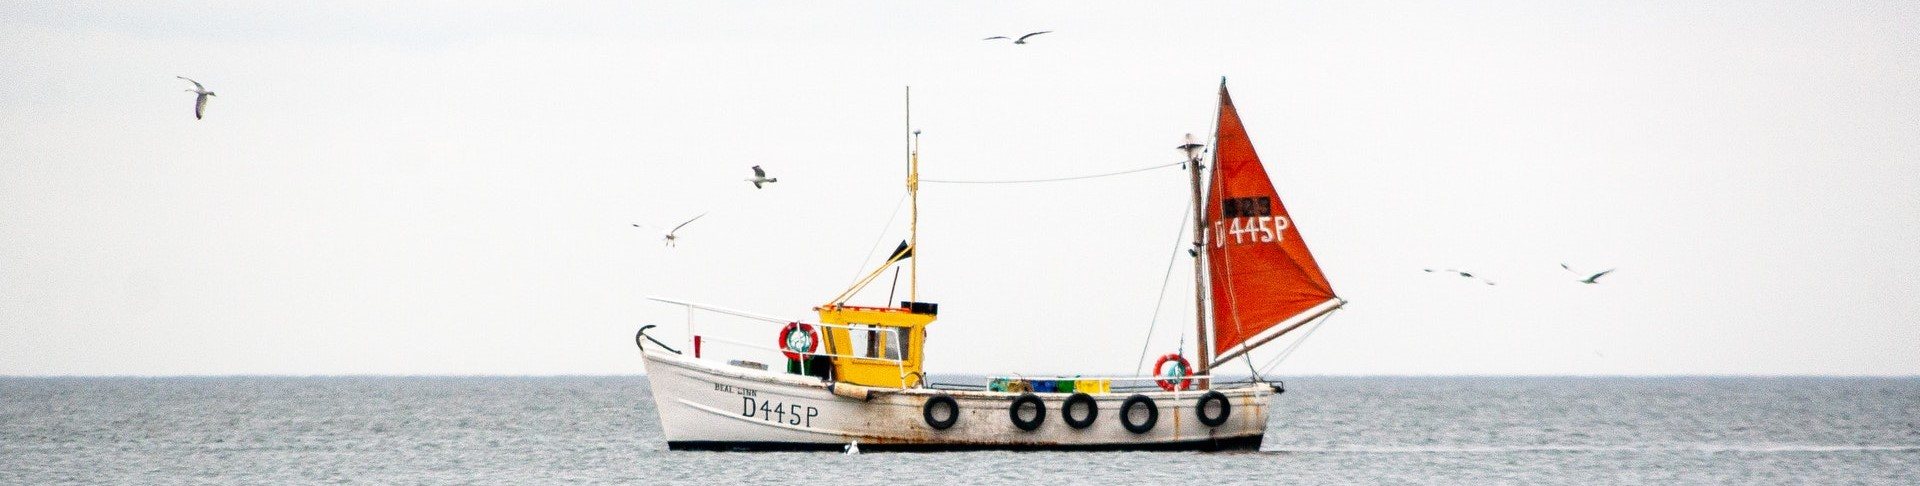 yellow-and-white-sail-boat-on-sea-3703074